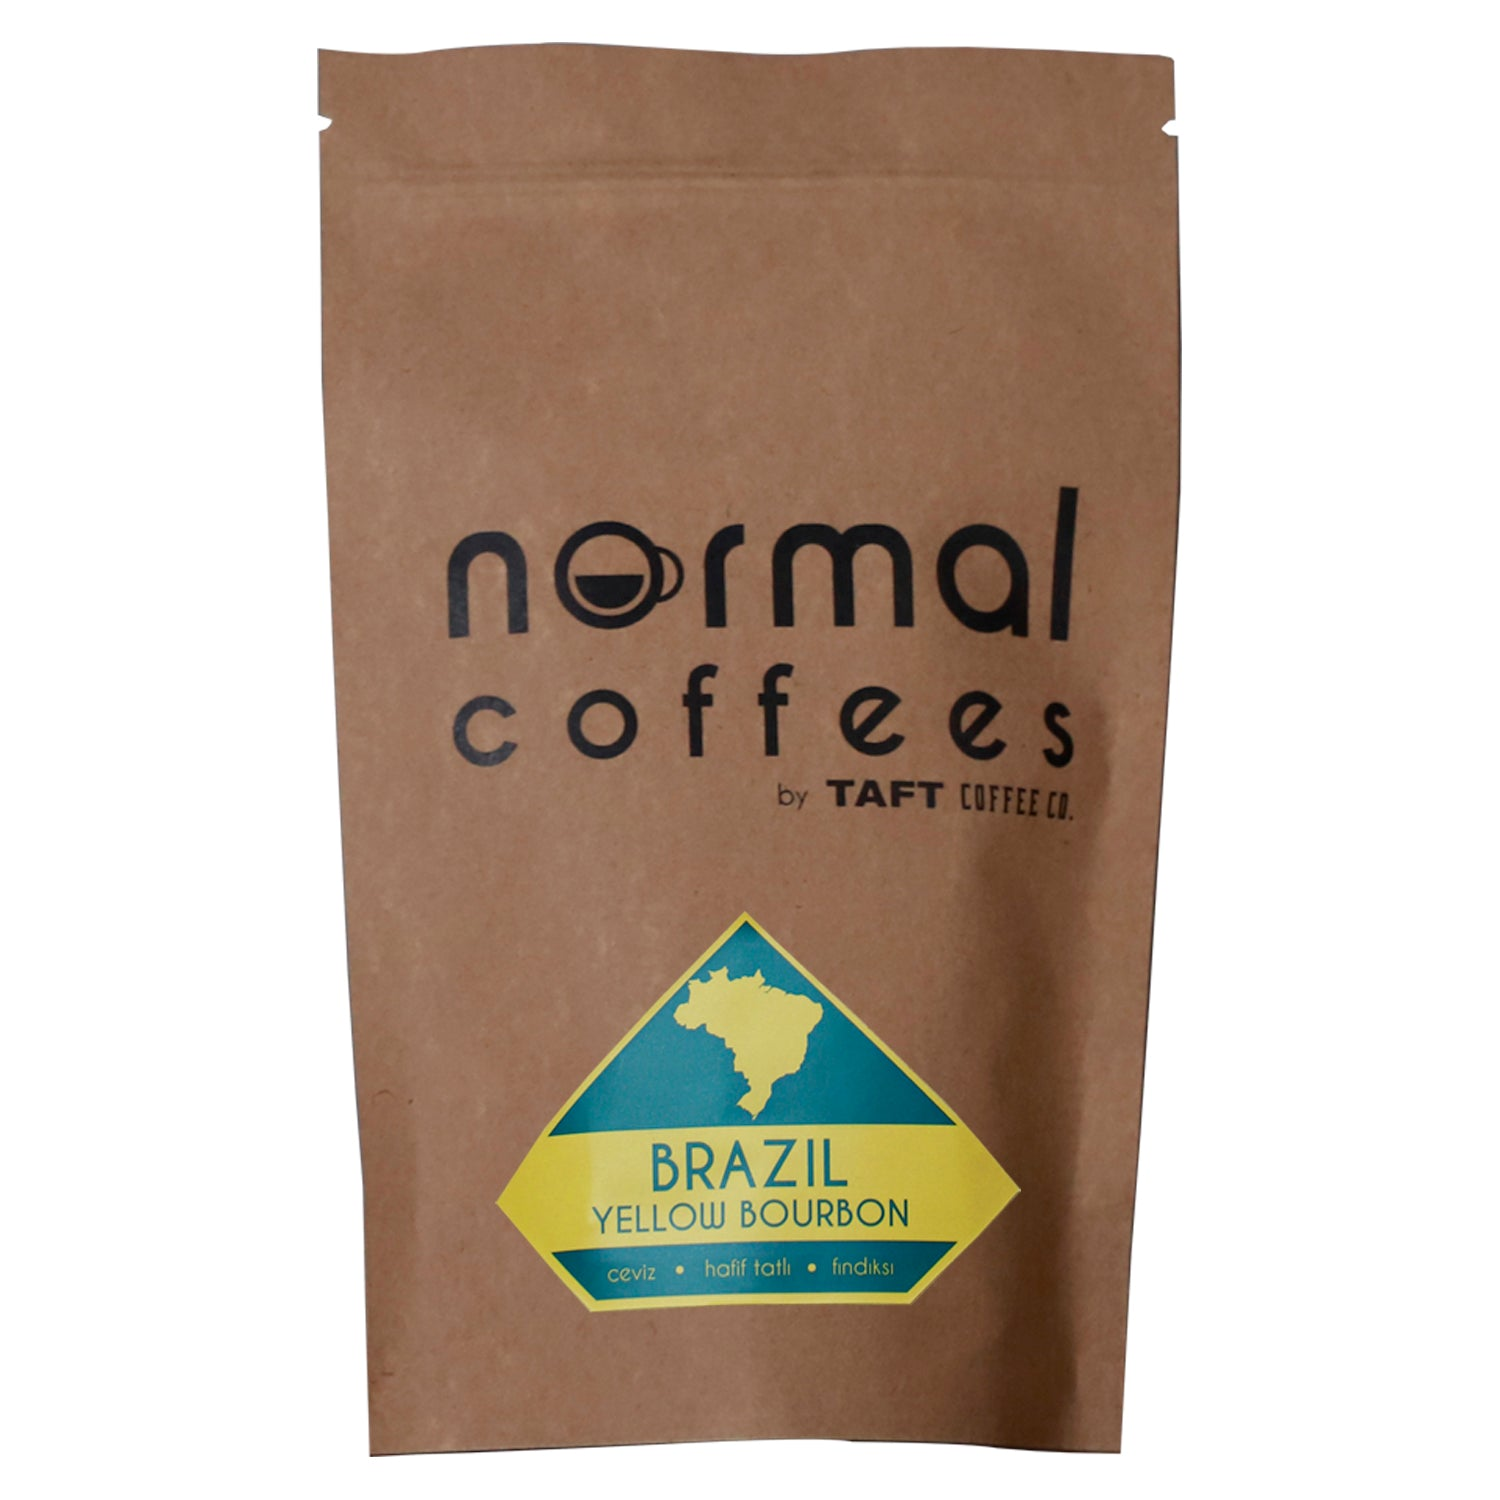 Normal Coffees by TAFT Coffee Co. Brezilya Yellow Bourbon